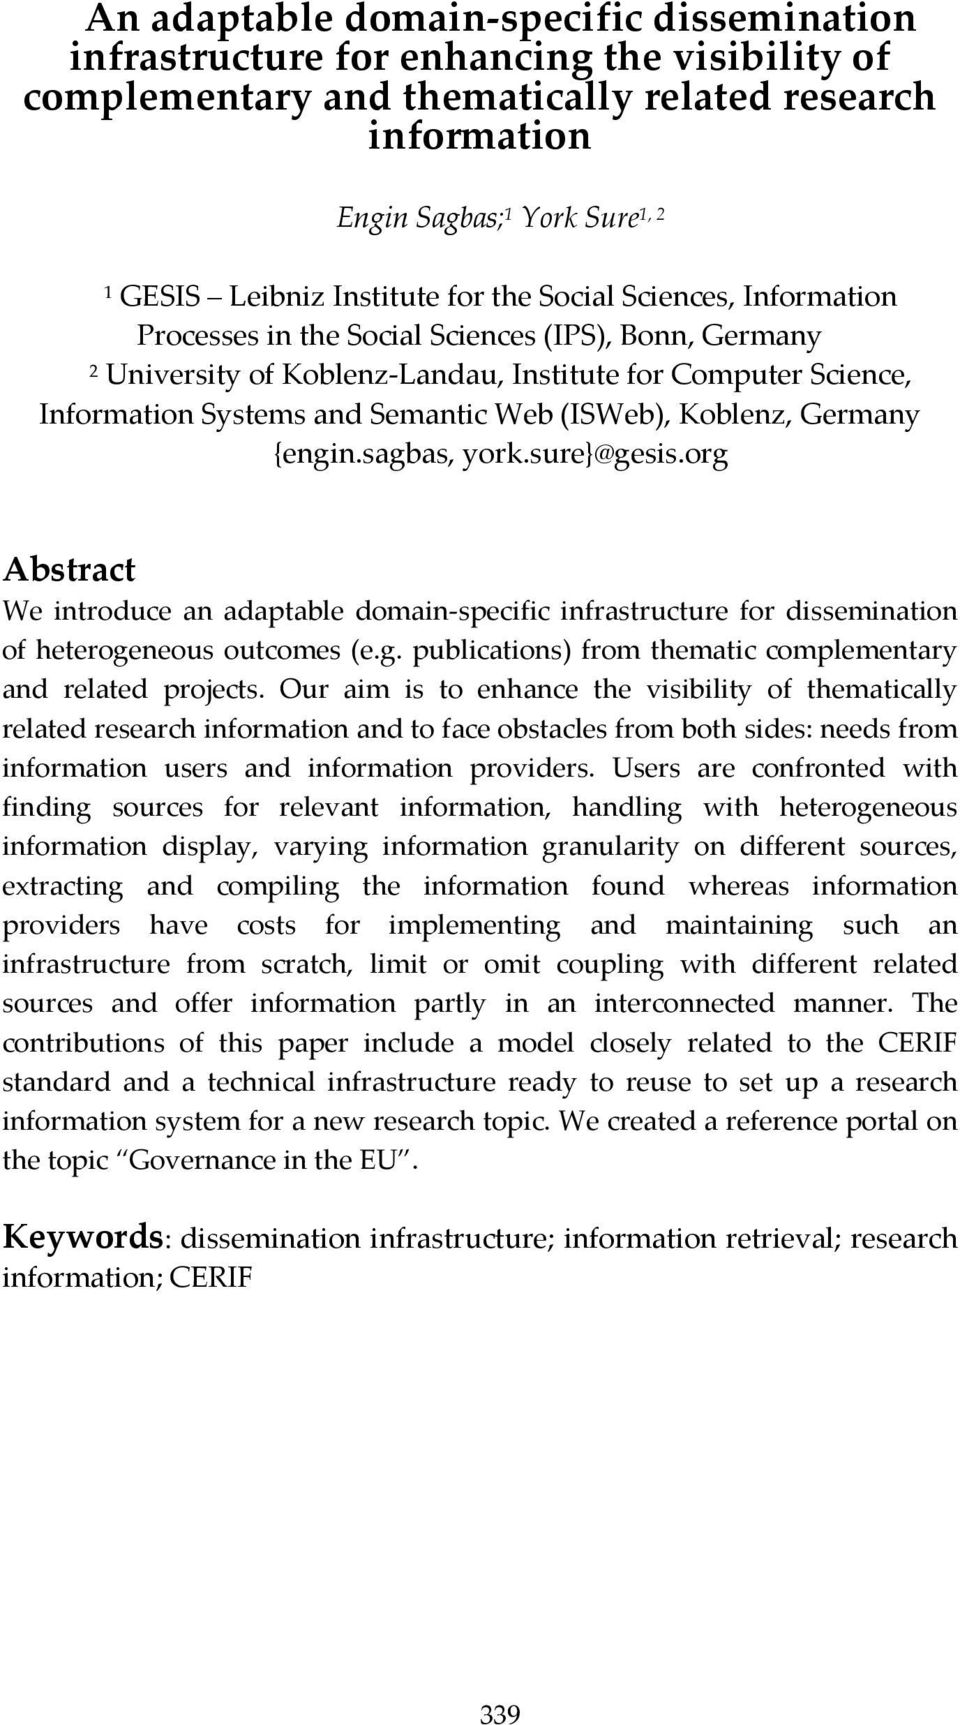 Web (ISWeb), Koblenz, Germany {engin.sagbas, york.sure}@gesis.org Abstract We introduce an adaptable domain specific infrastructure for dissemination of heterogeneous outcomes (e.g. publications) from thematic complementary and related projects.